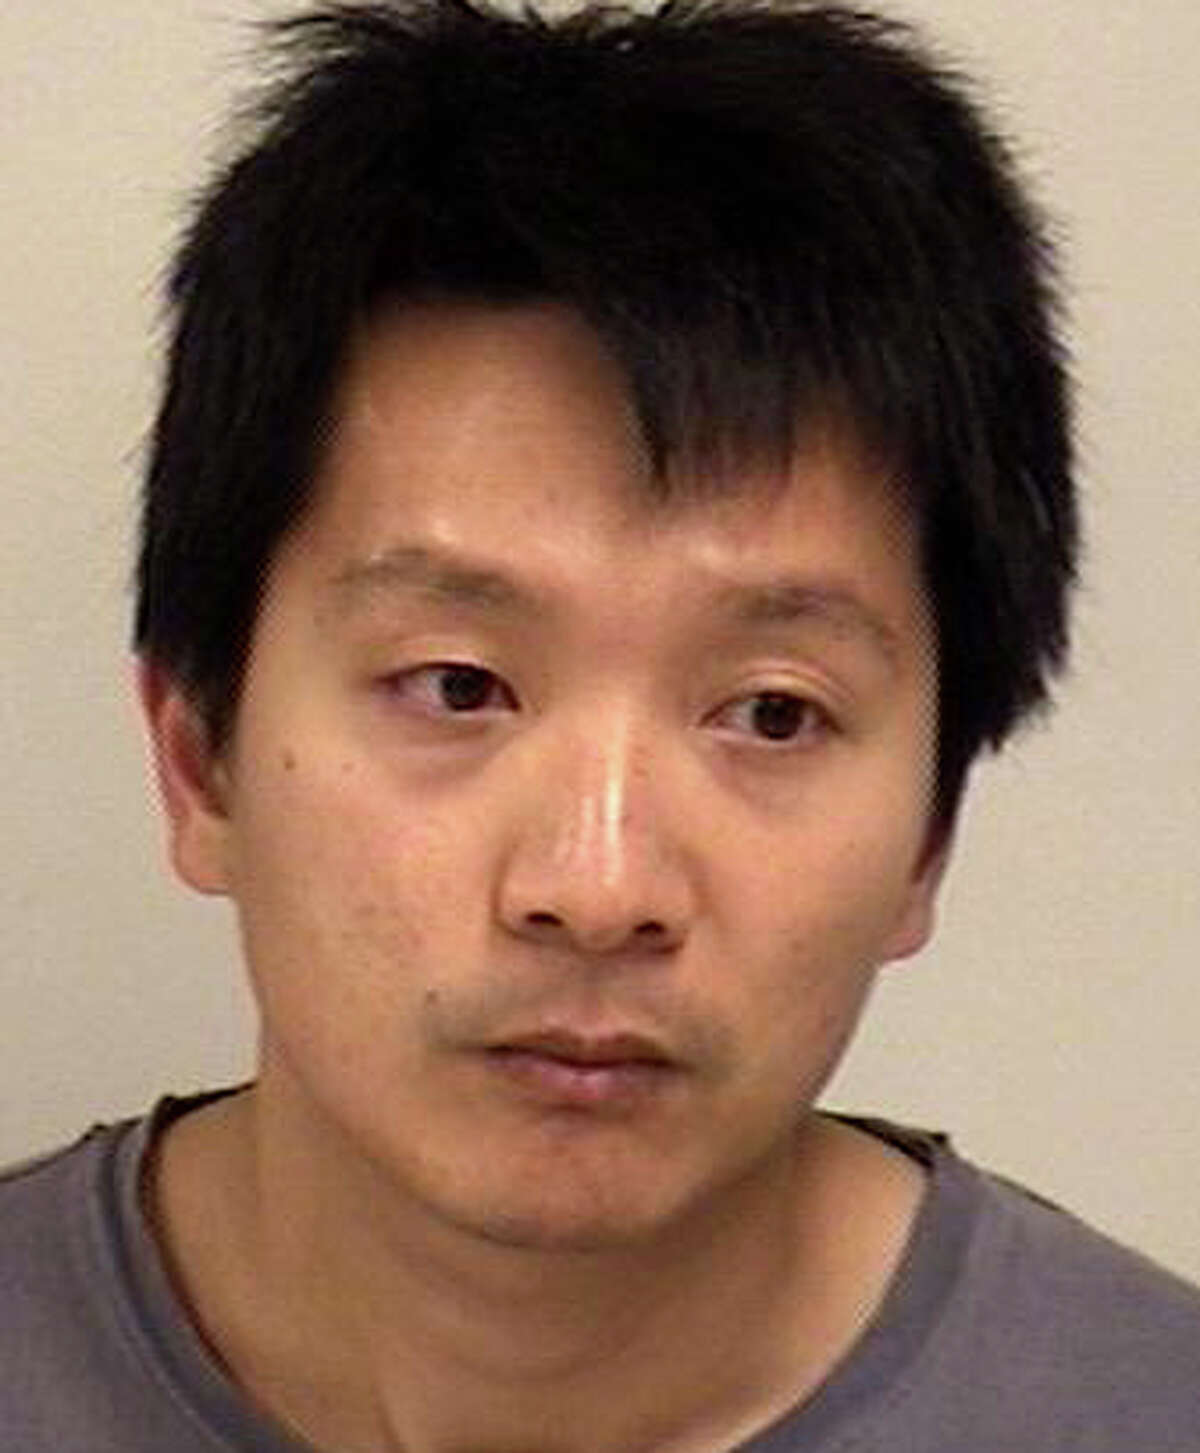 Xinxiao Zang, 32, of Cross Way faces charges after what police said was a domestic dispute.